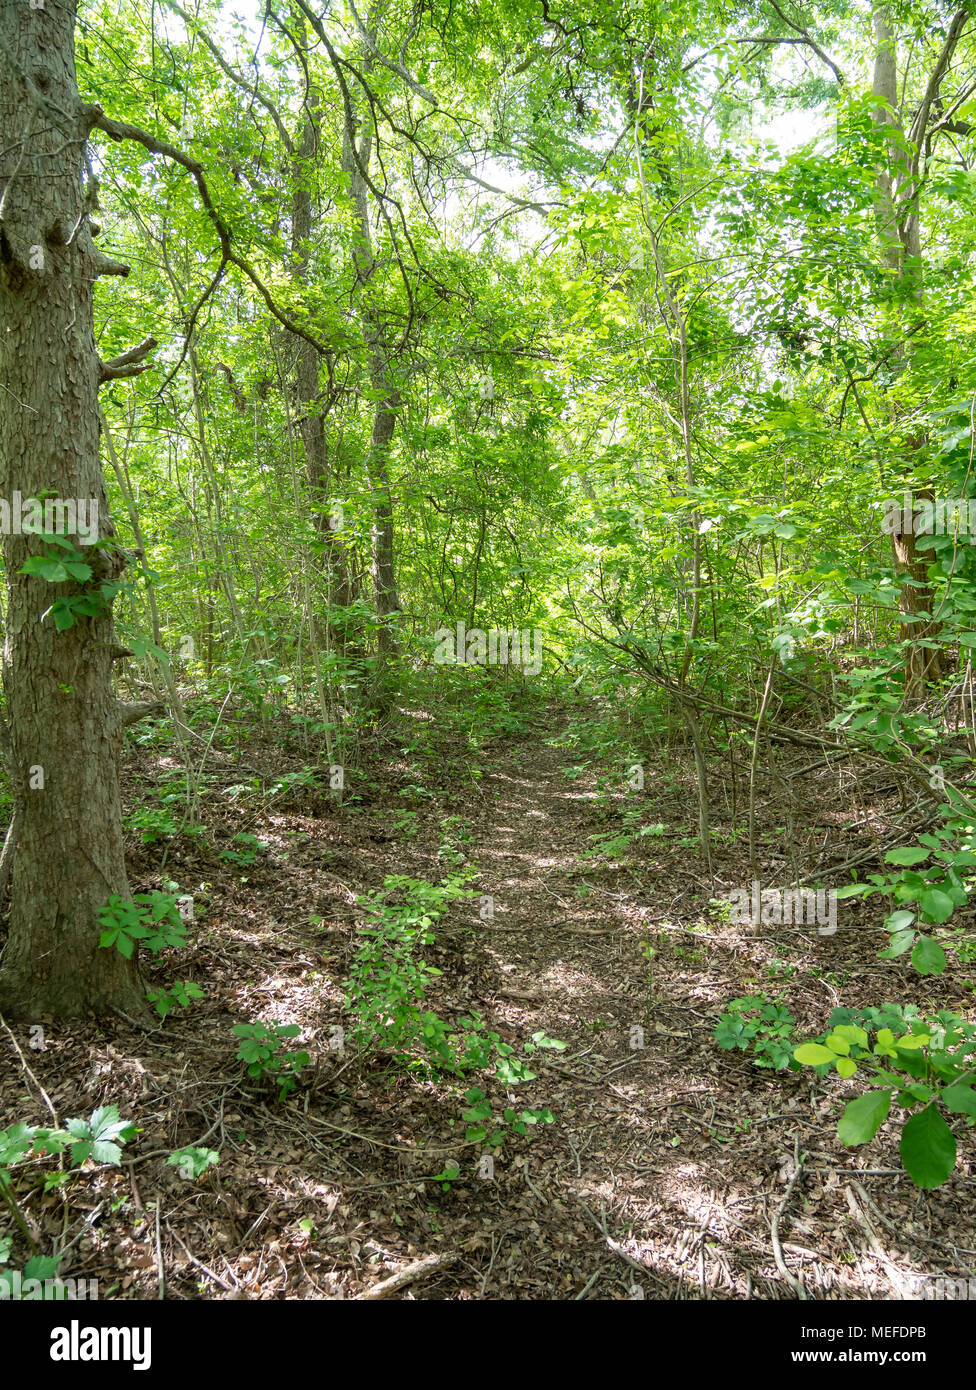 Dense and Green Forest During a Sunny Day Stock Photo